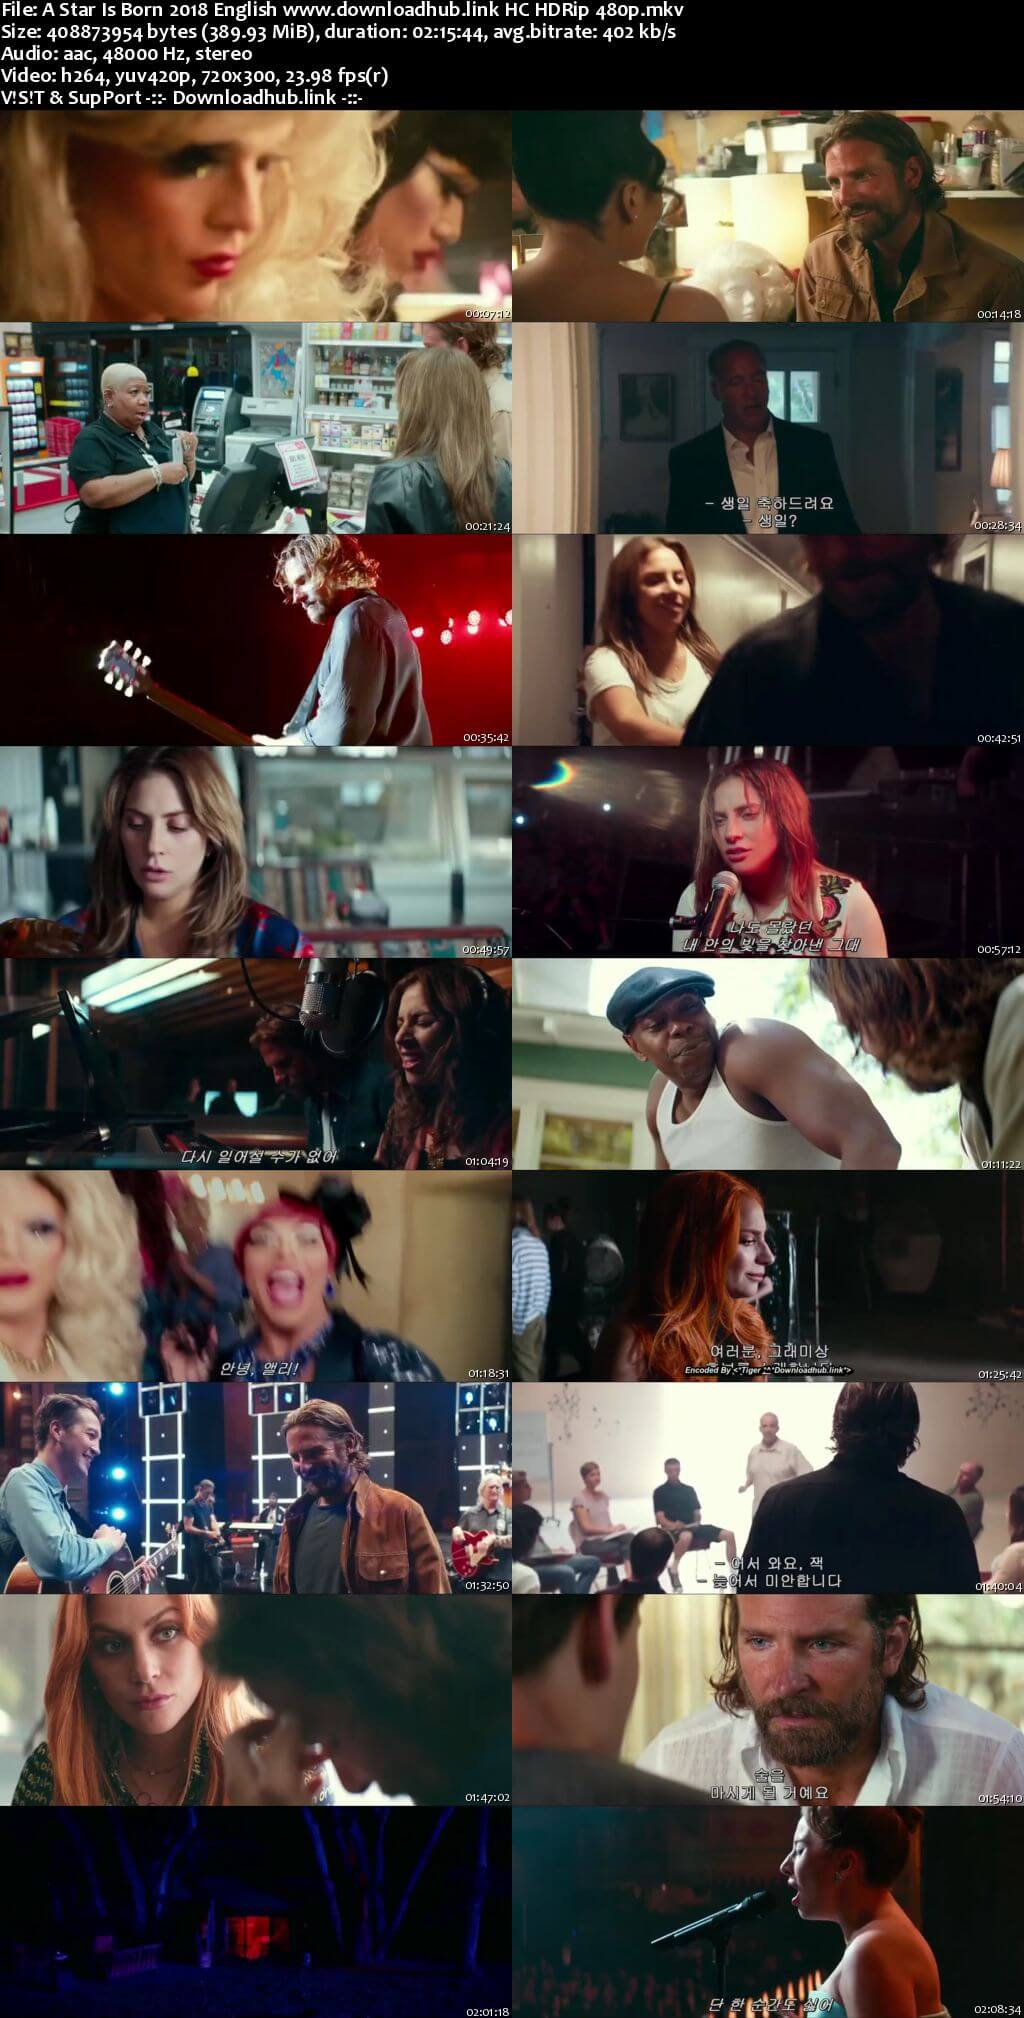 A Star Is Born 2018 English 350MB HC HDRip 480p